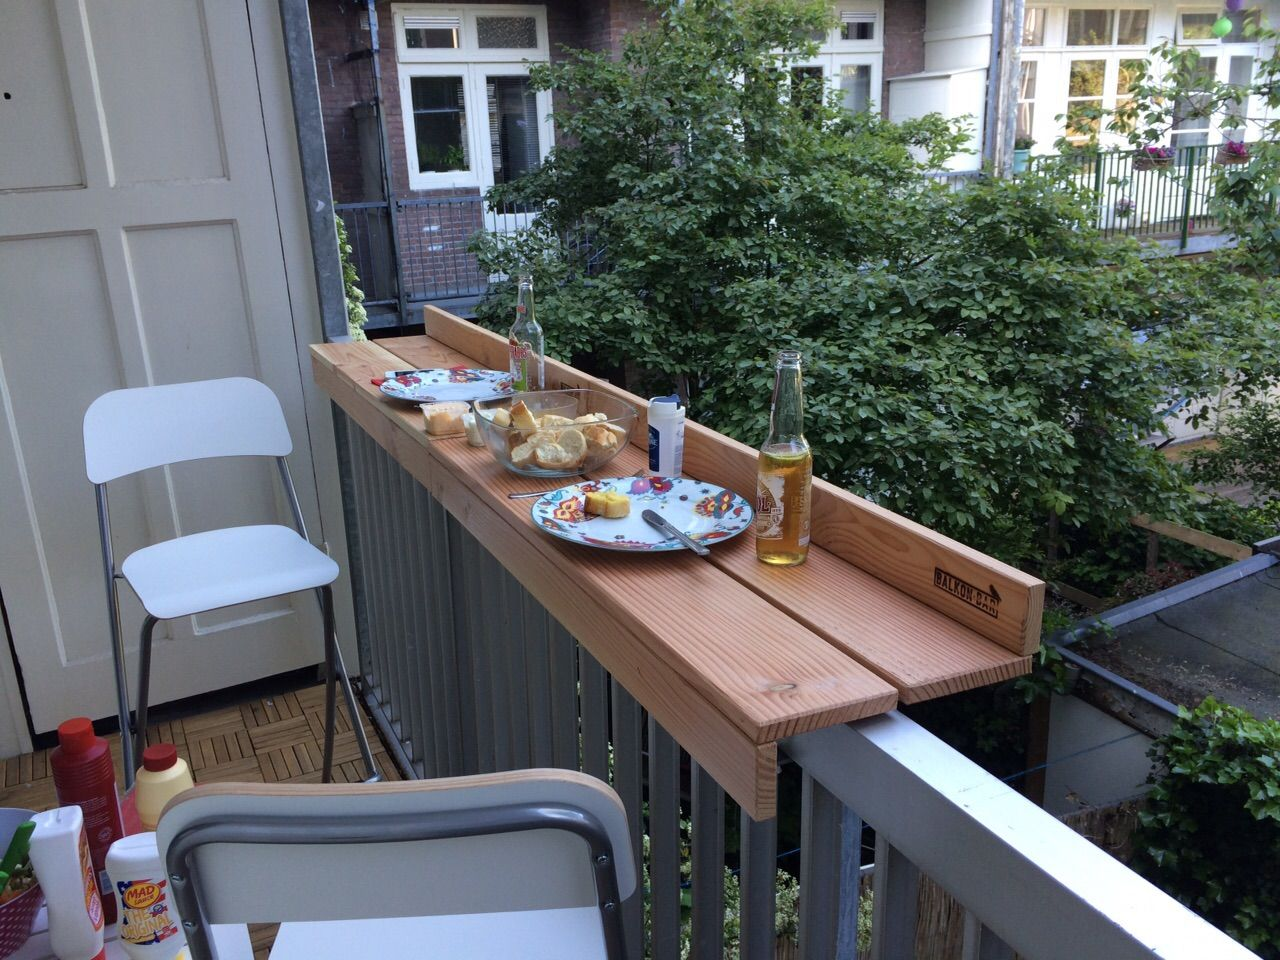 kleine zimmerrenovierung garten diy dekor, outdoor dining with the balcony bar even on a small balcony, Innenarchitektur